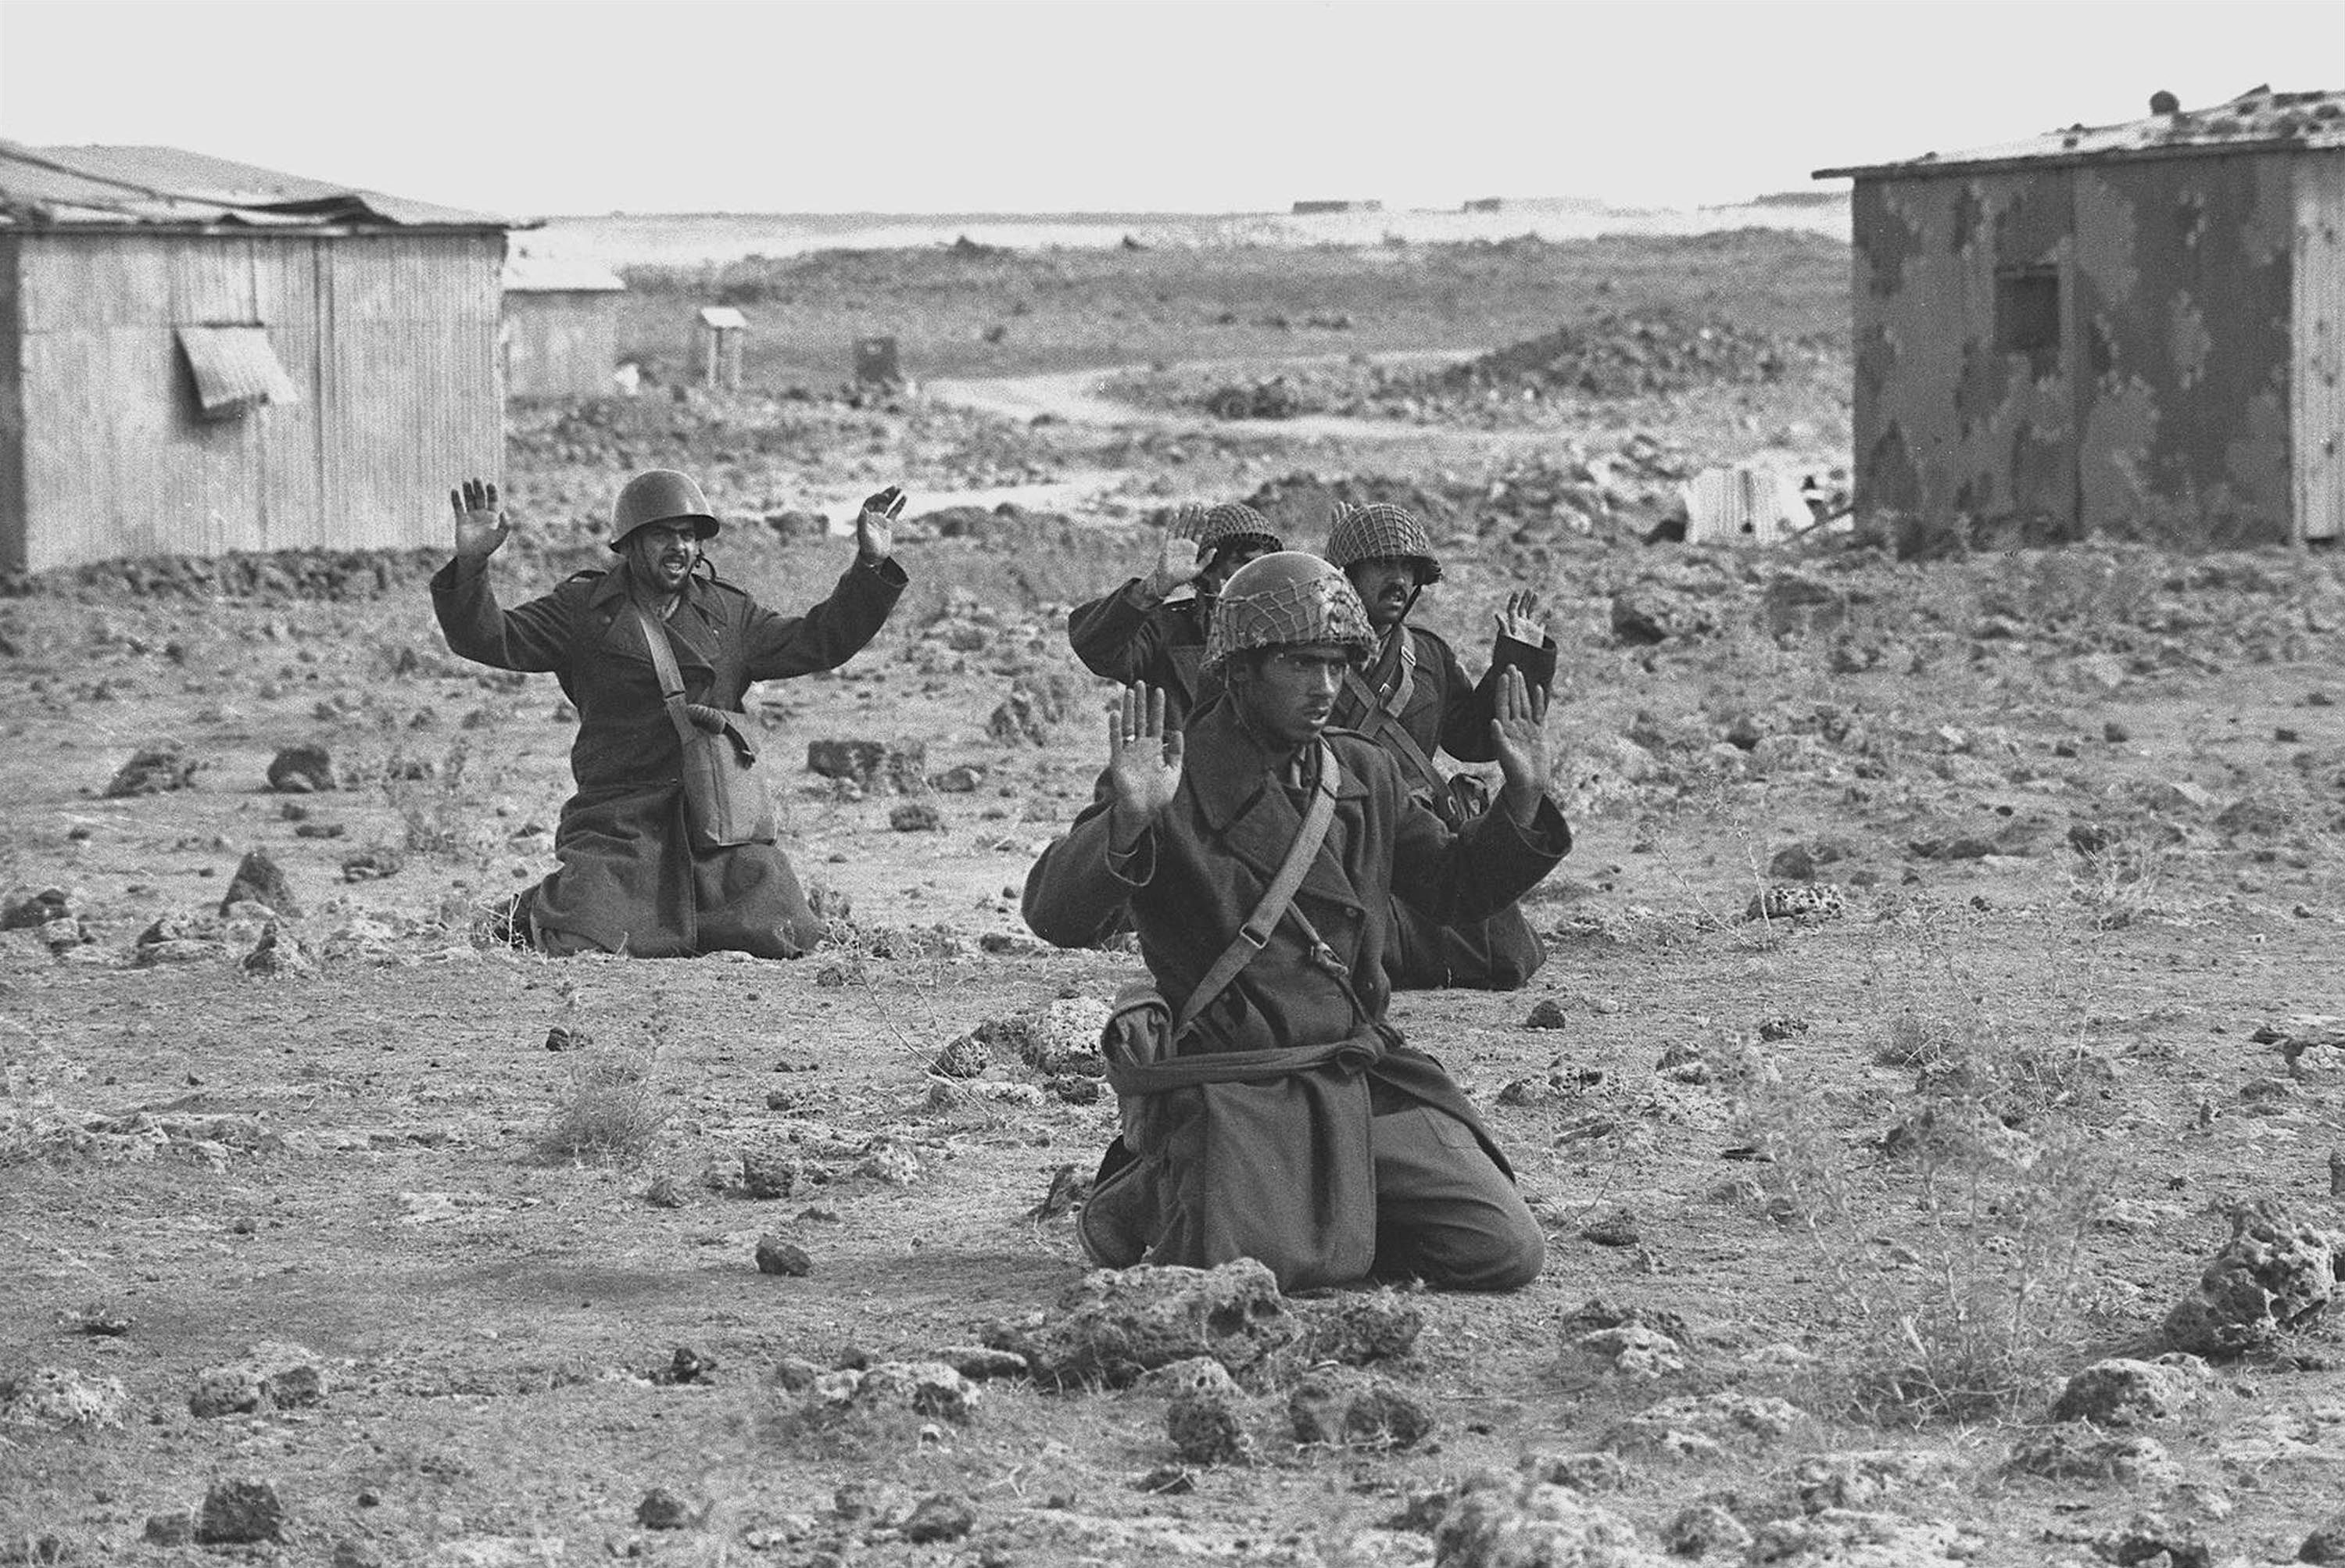 Syrian soldiers raise their hands in surrender October 10, 1973 on the Golan Heights, five days into the Yom Kippur War.